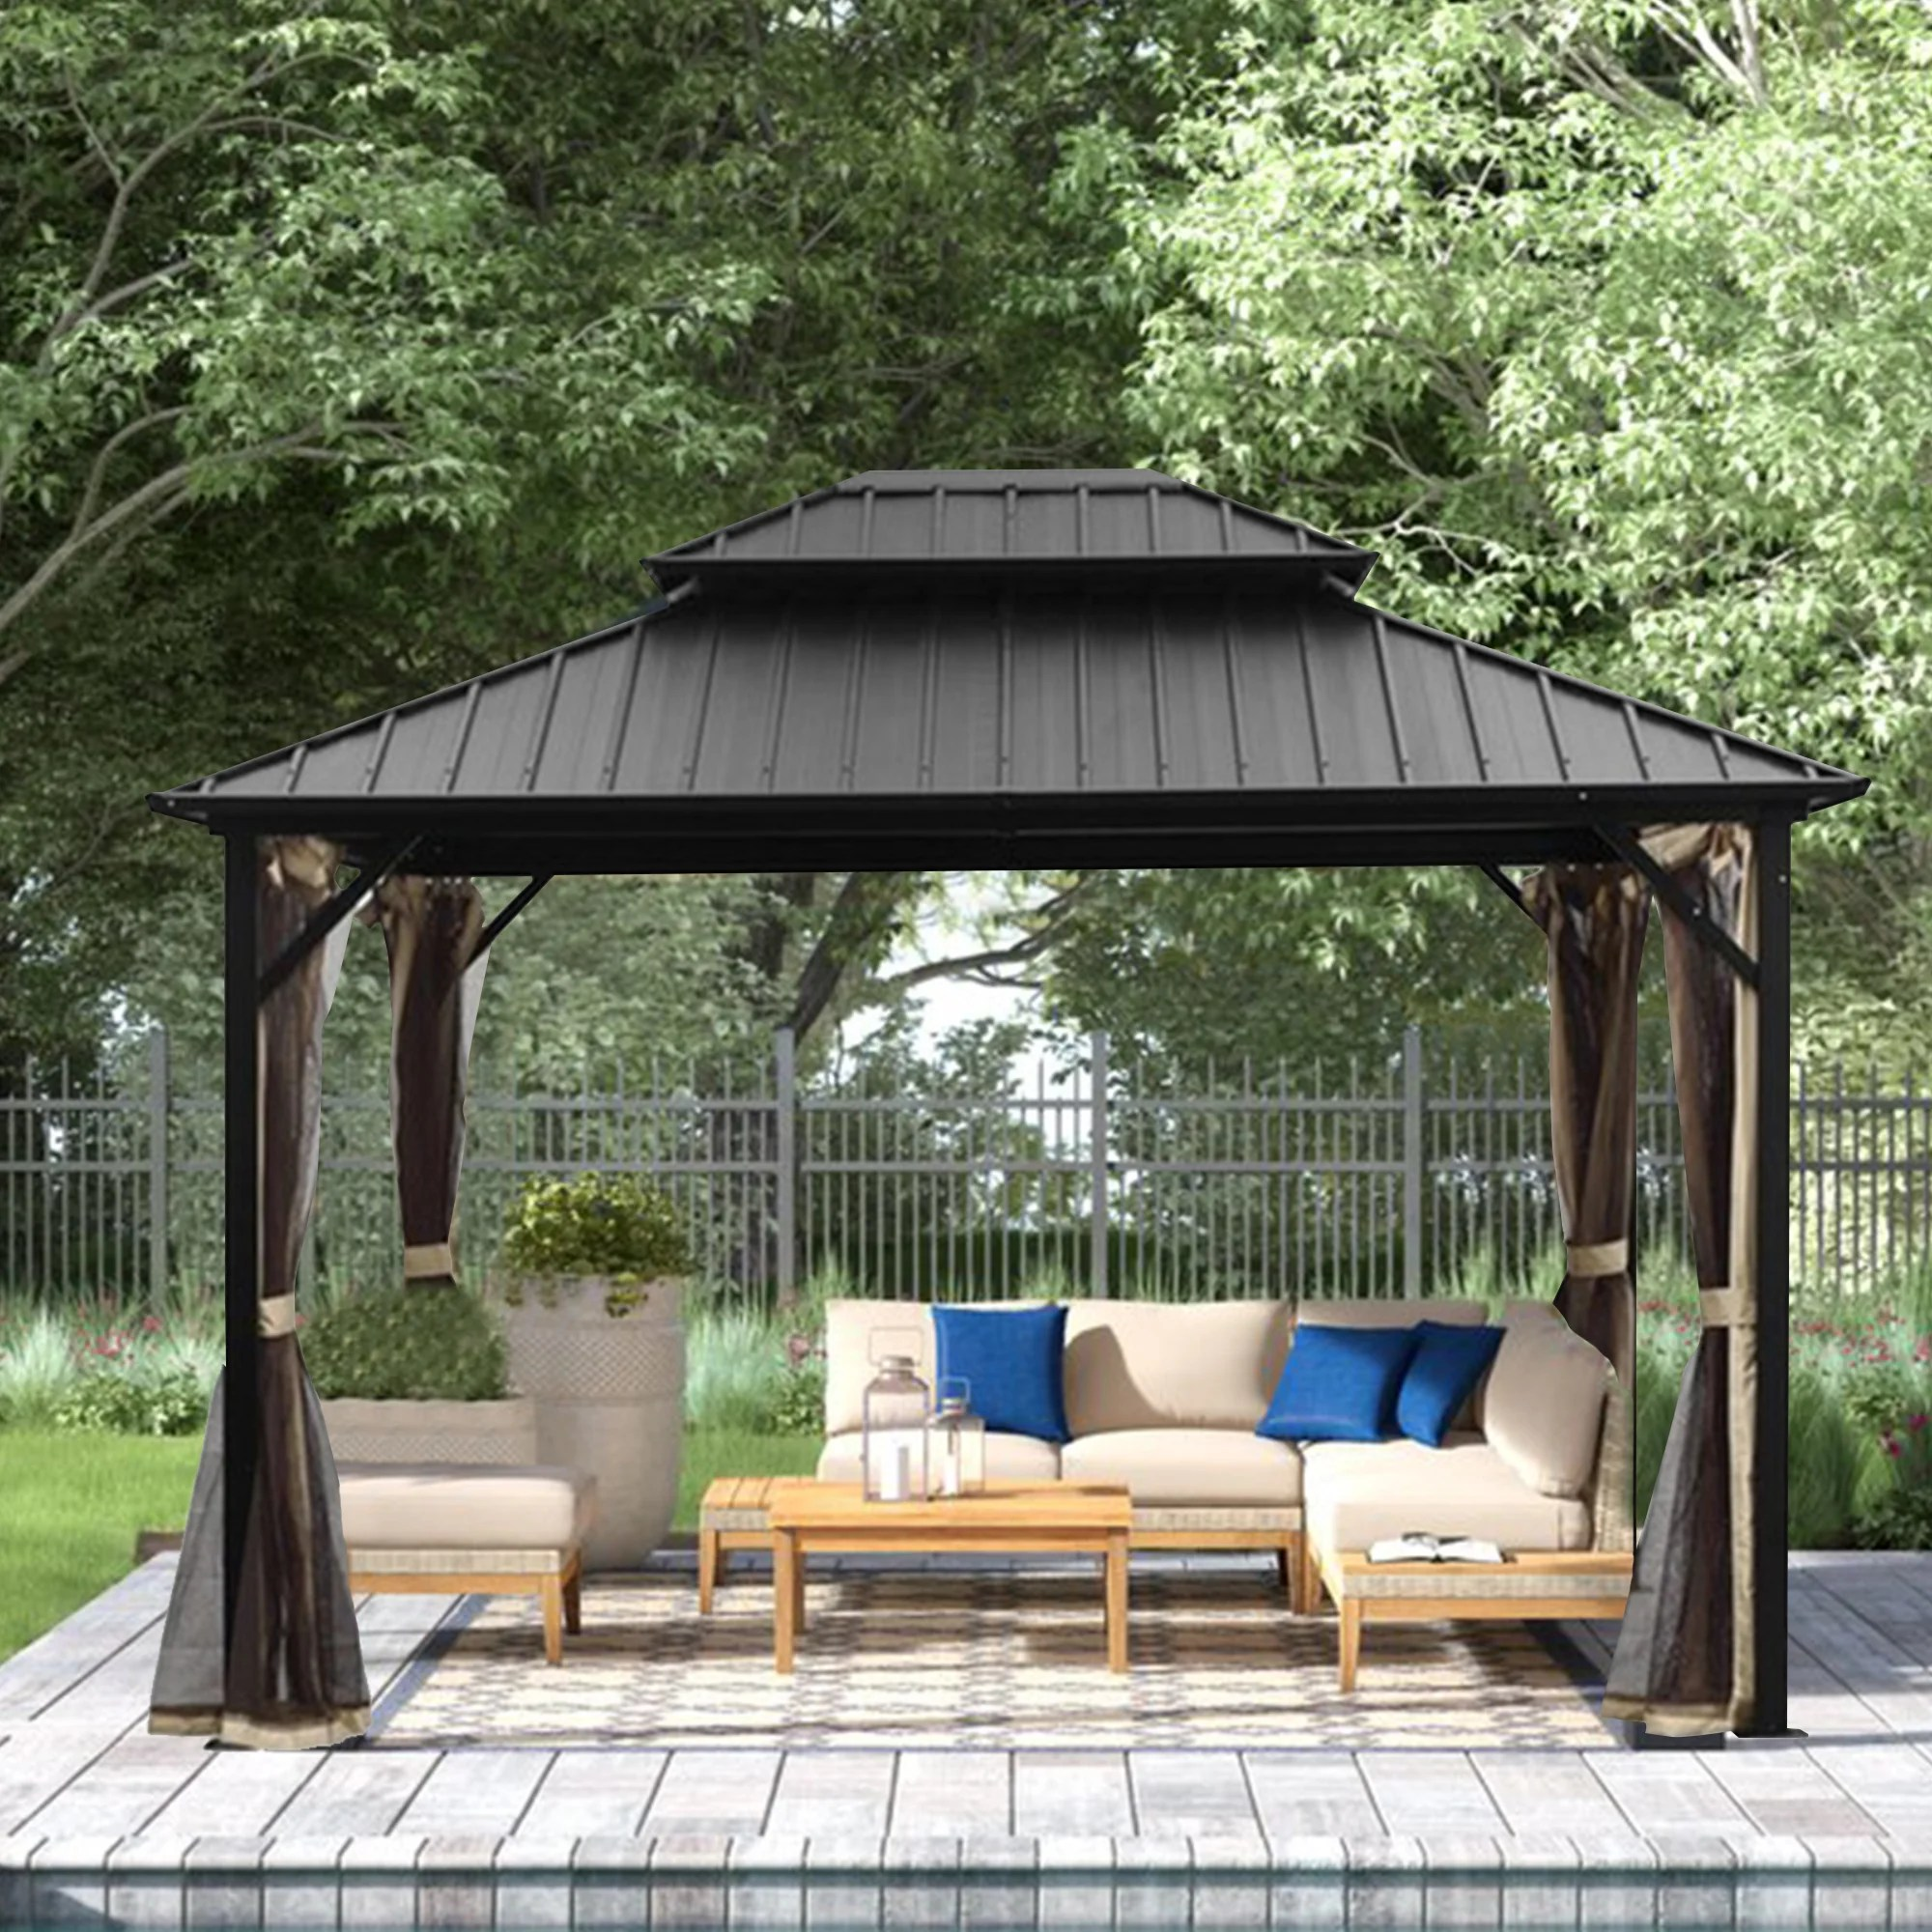 10x12 ft double hardtop gazebo with mosquito netting for patios steel top and aluminum frame